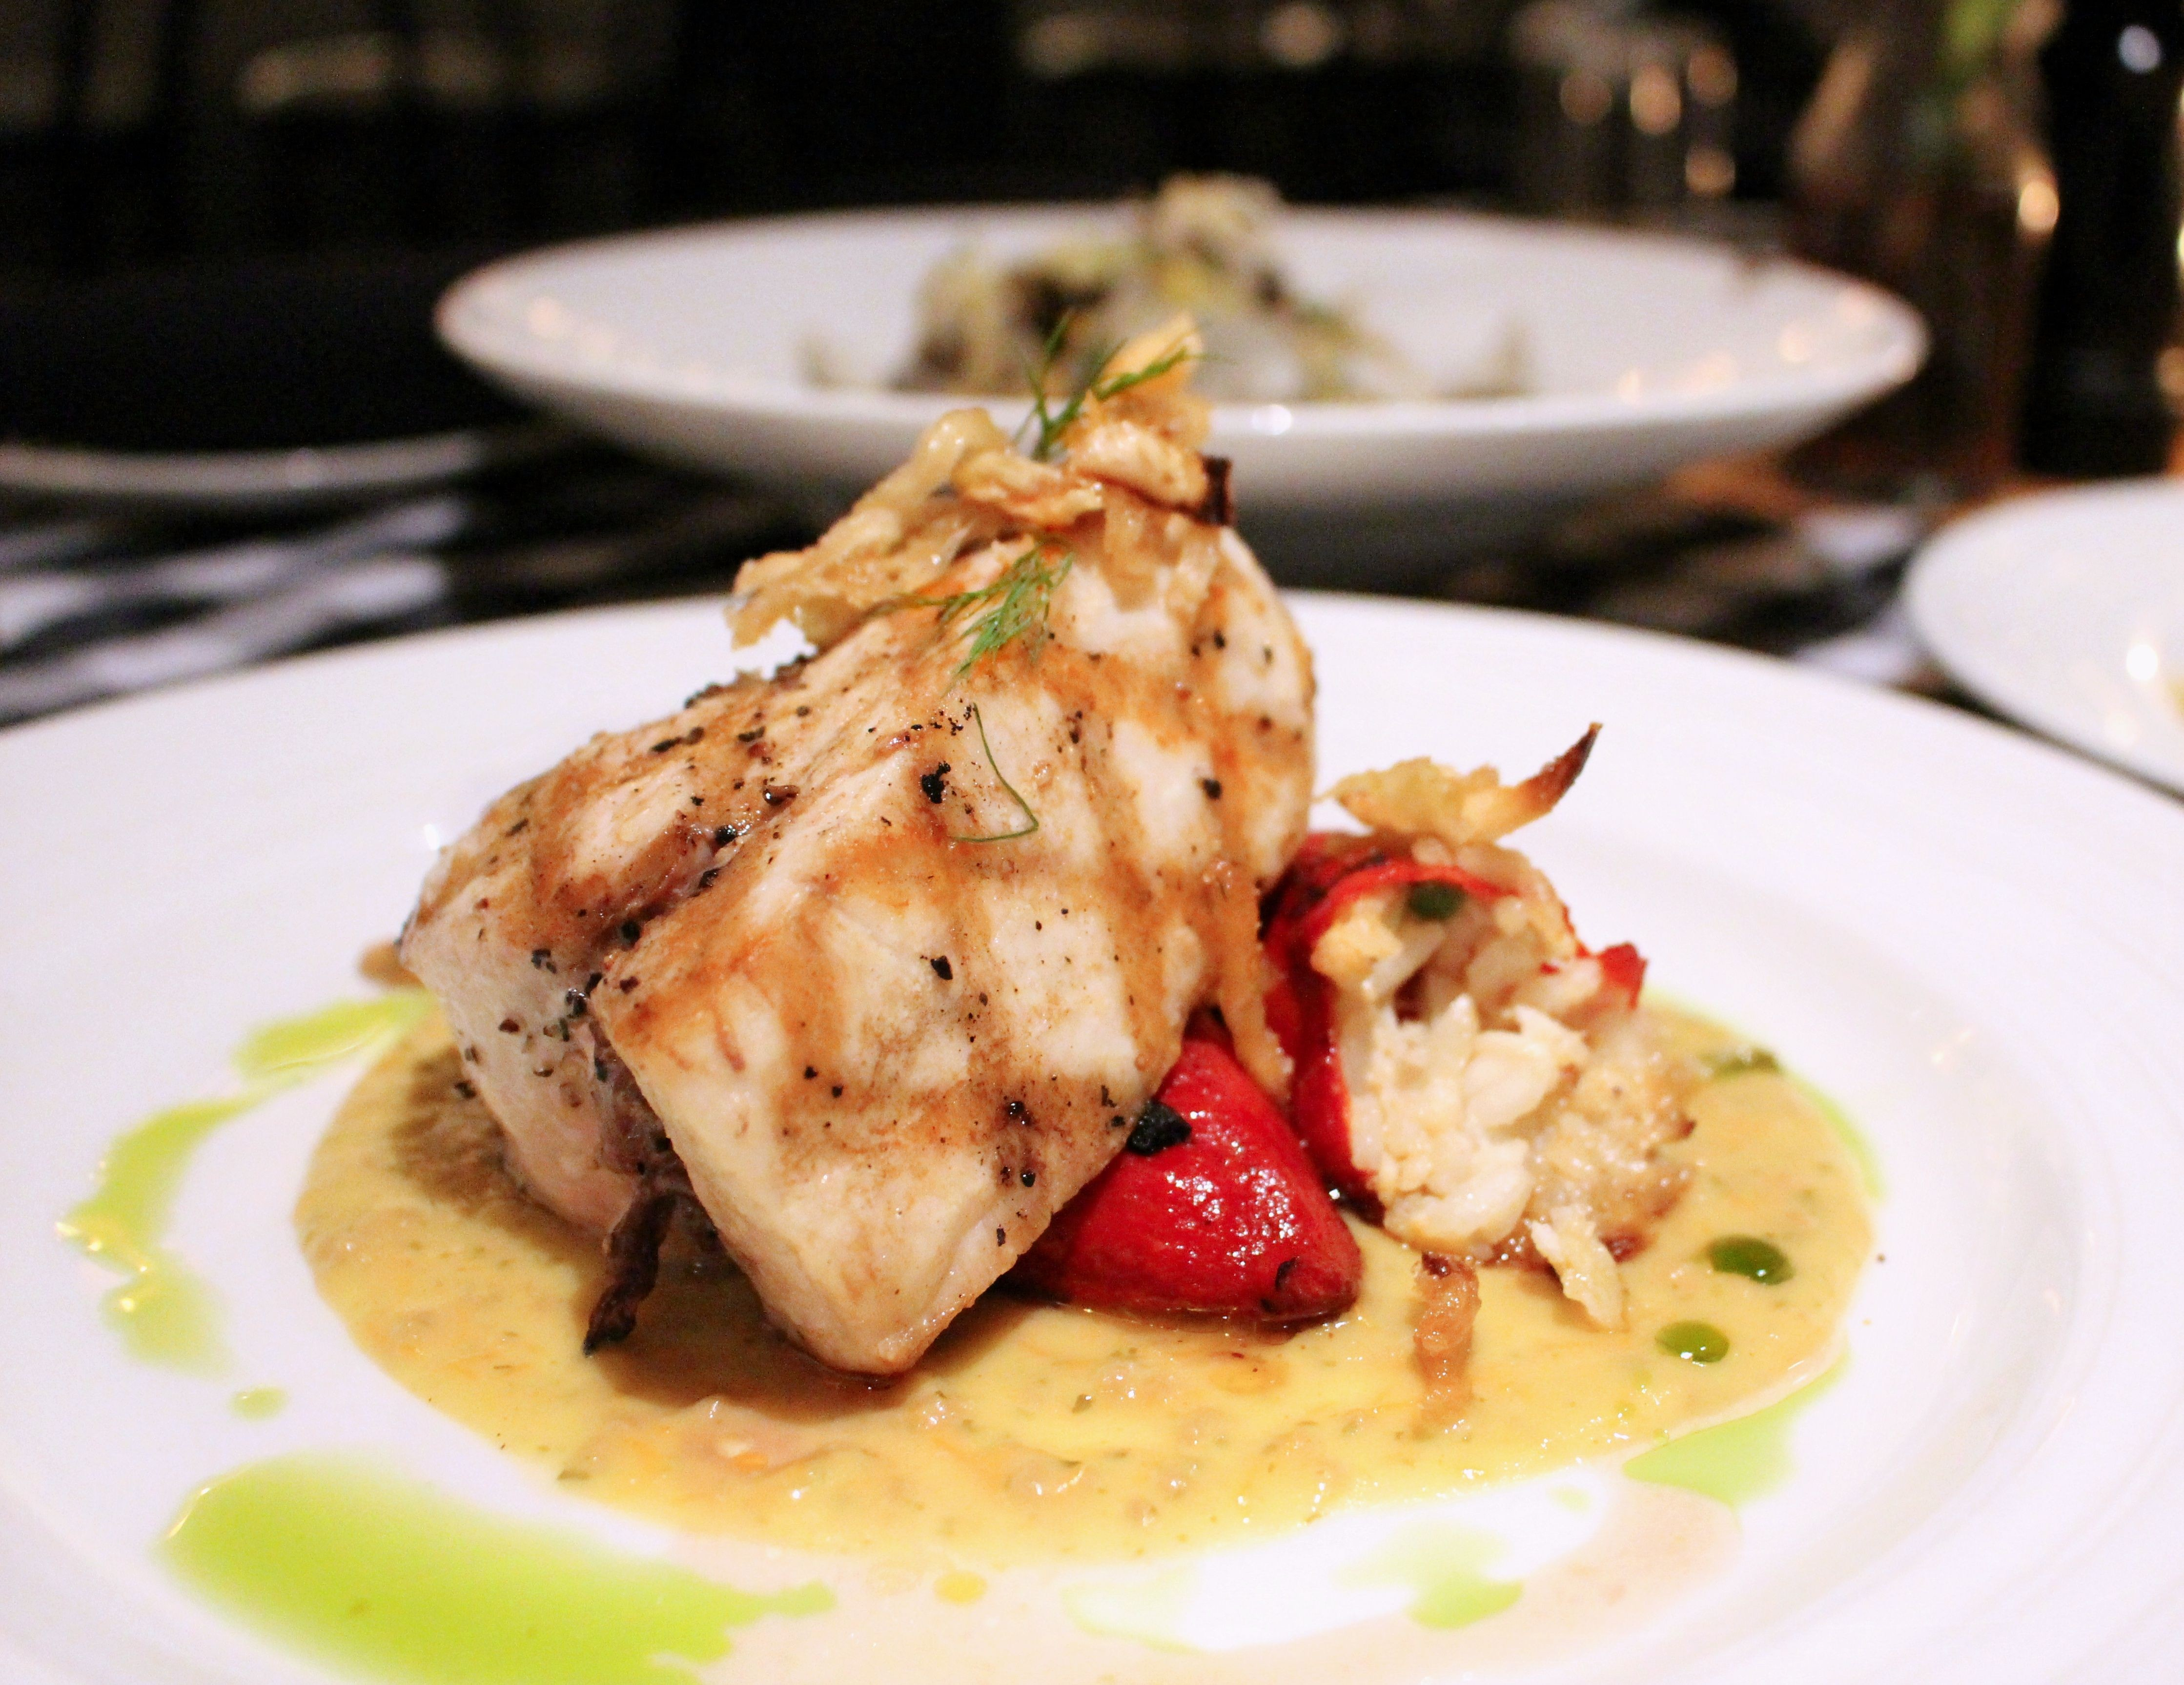 Swordfish steak with sweet piquillo peppers stuffed with crab and rice ...